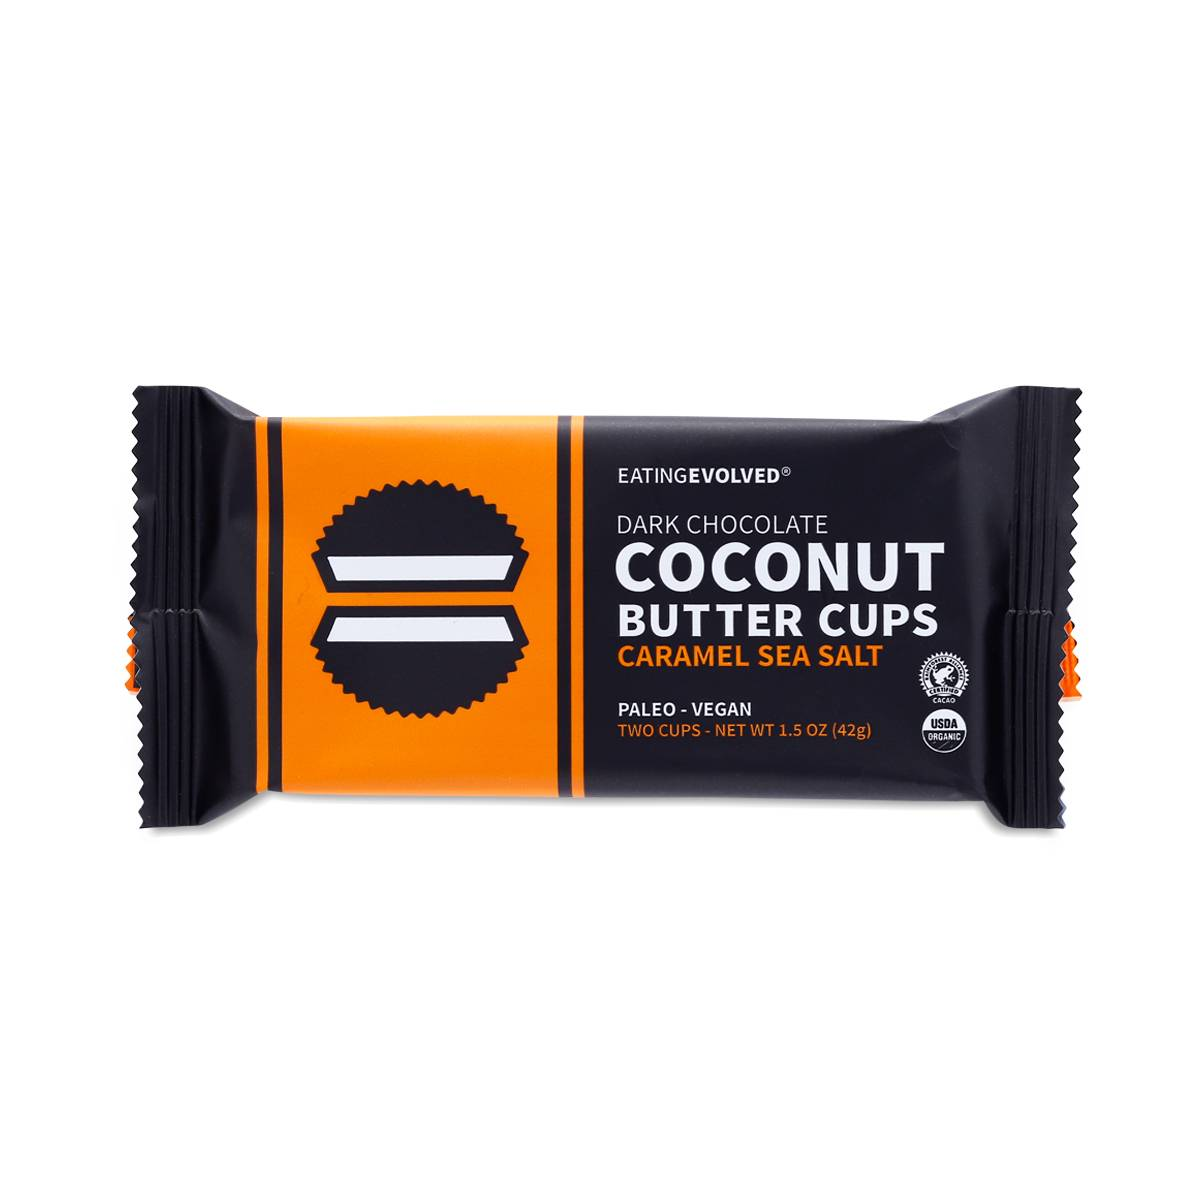 Eatingevolved Caramel Sea Salt Coconut Butter Cups